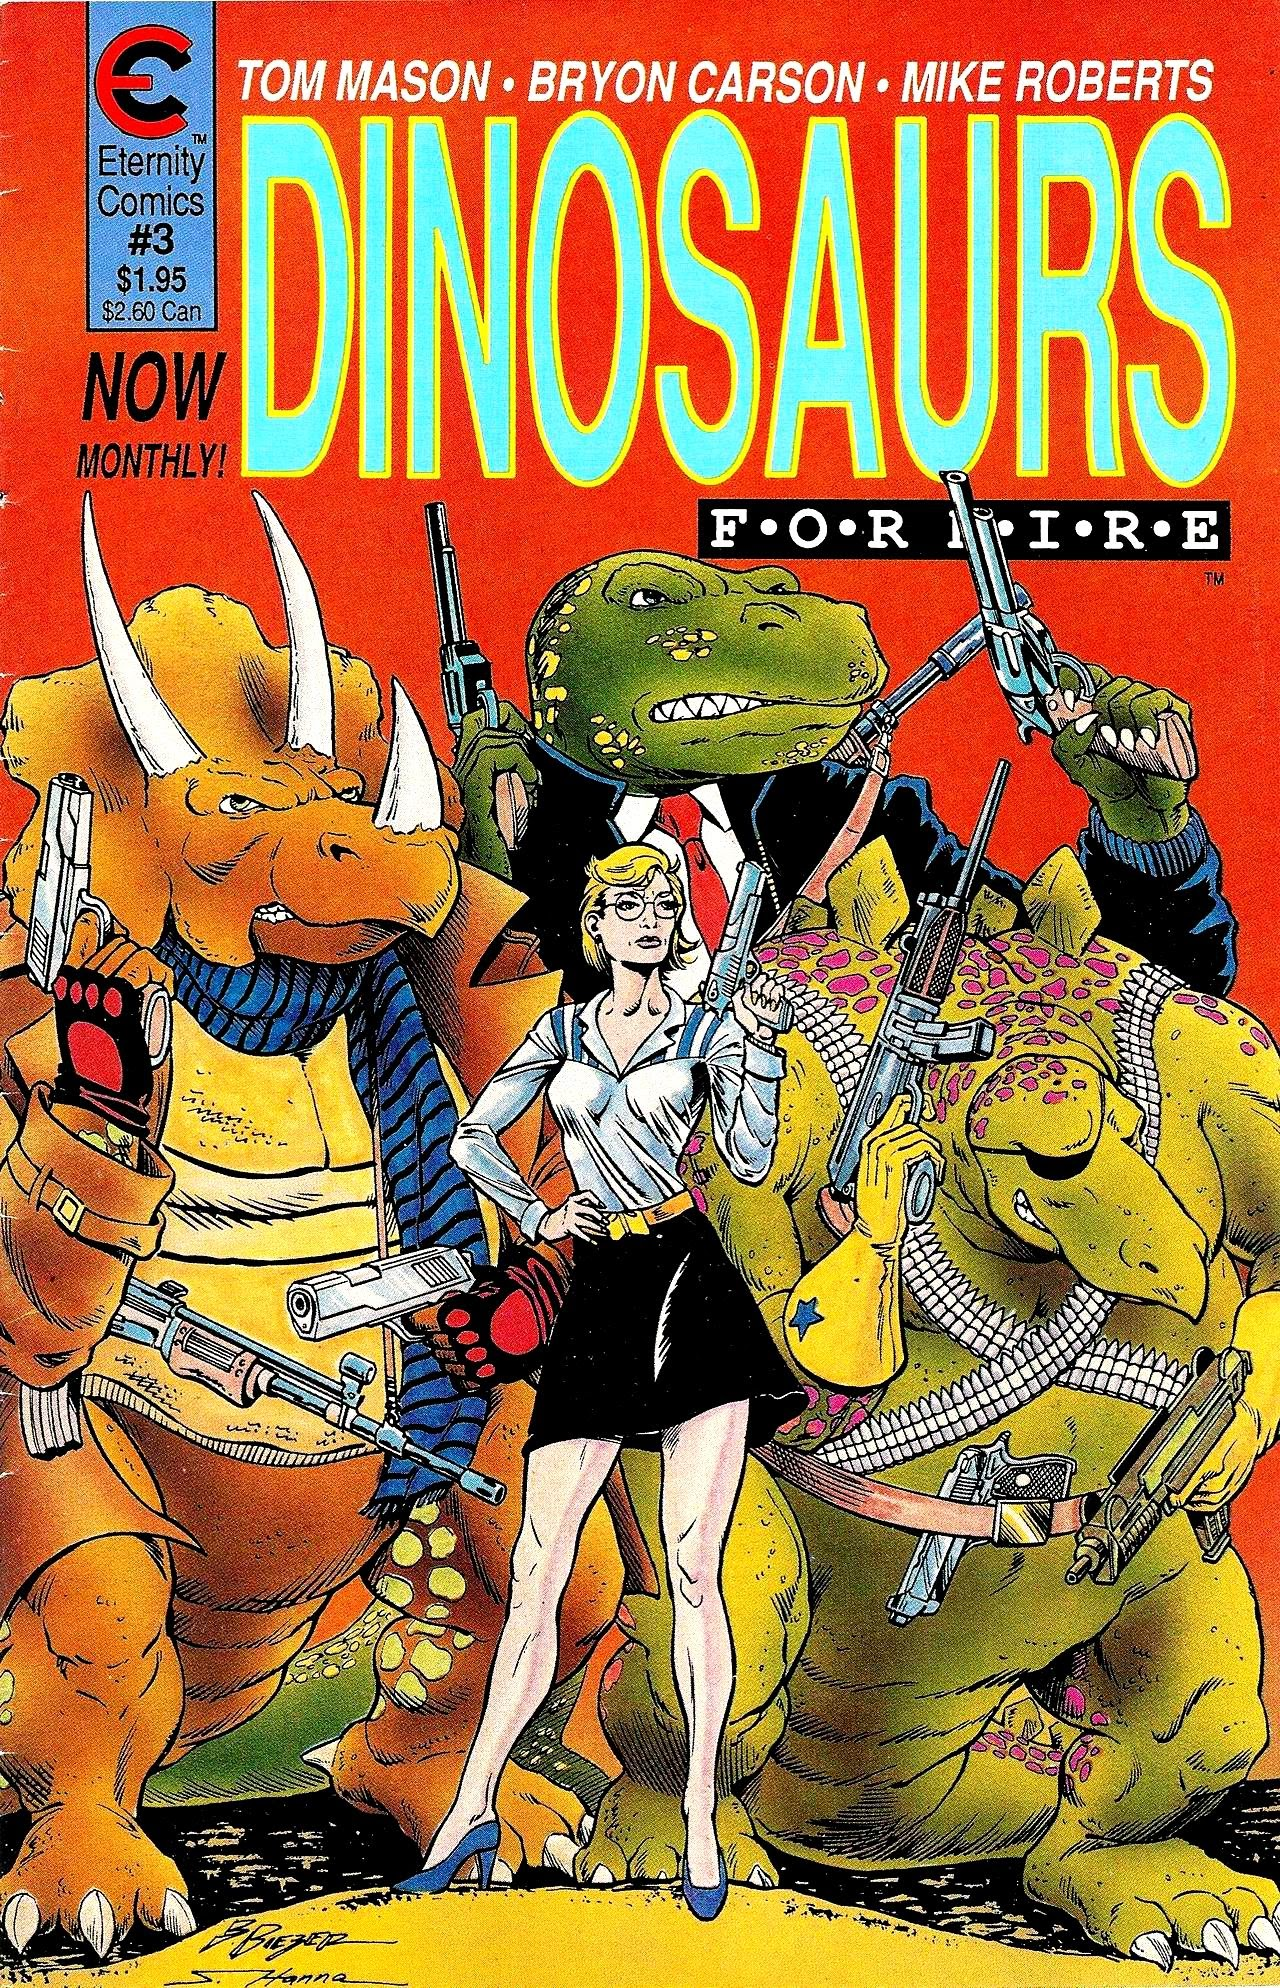 Dinosaurs For Hire (1988) issue 3 - Page 1